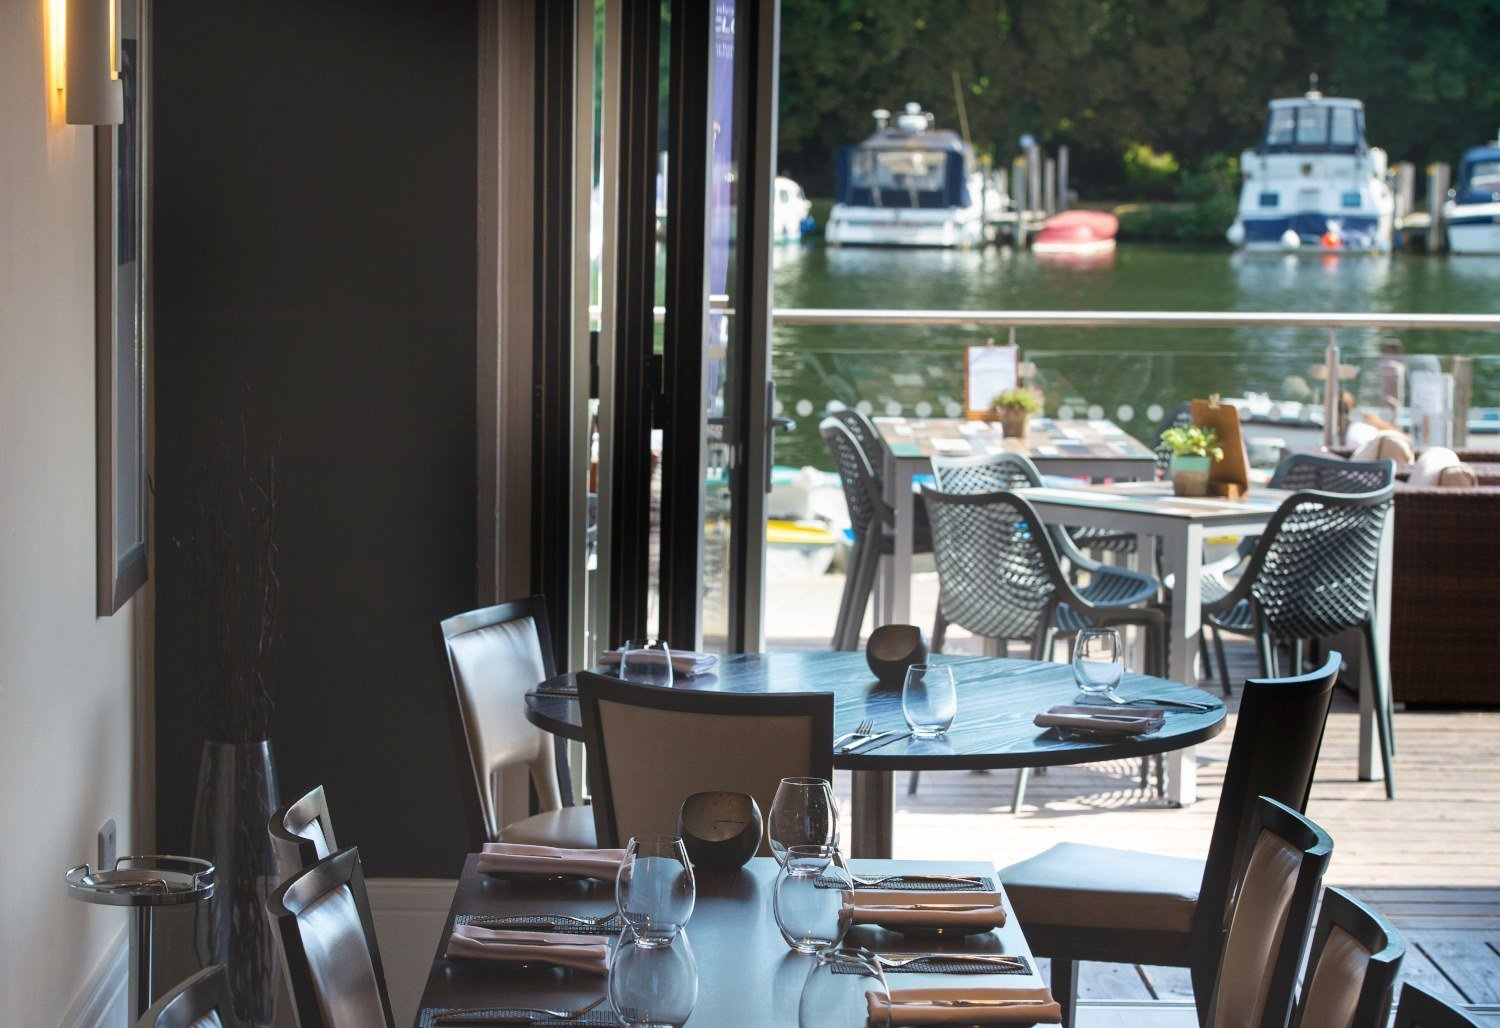 Shaun Dickens at The Boathouse Reastaurant in Henley-on-Thames, Oxfordshire